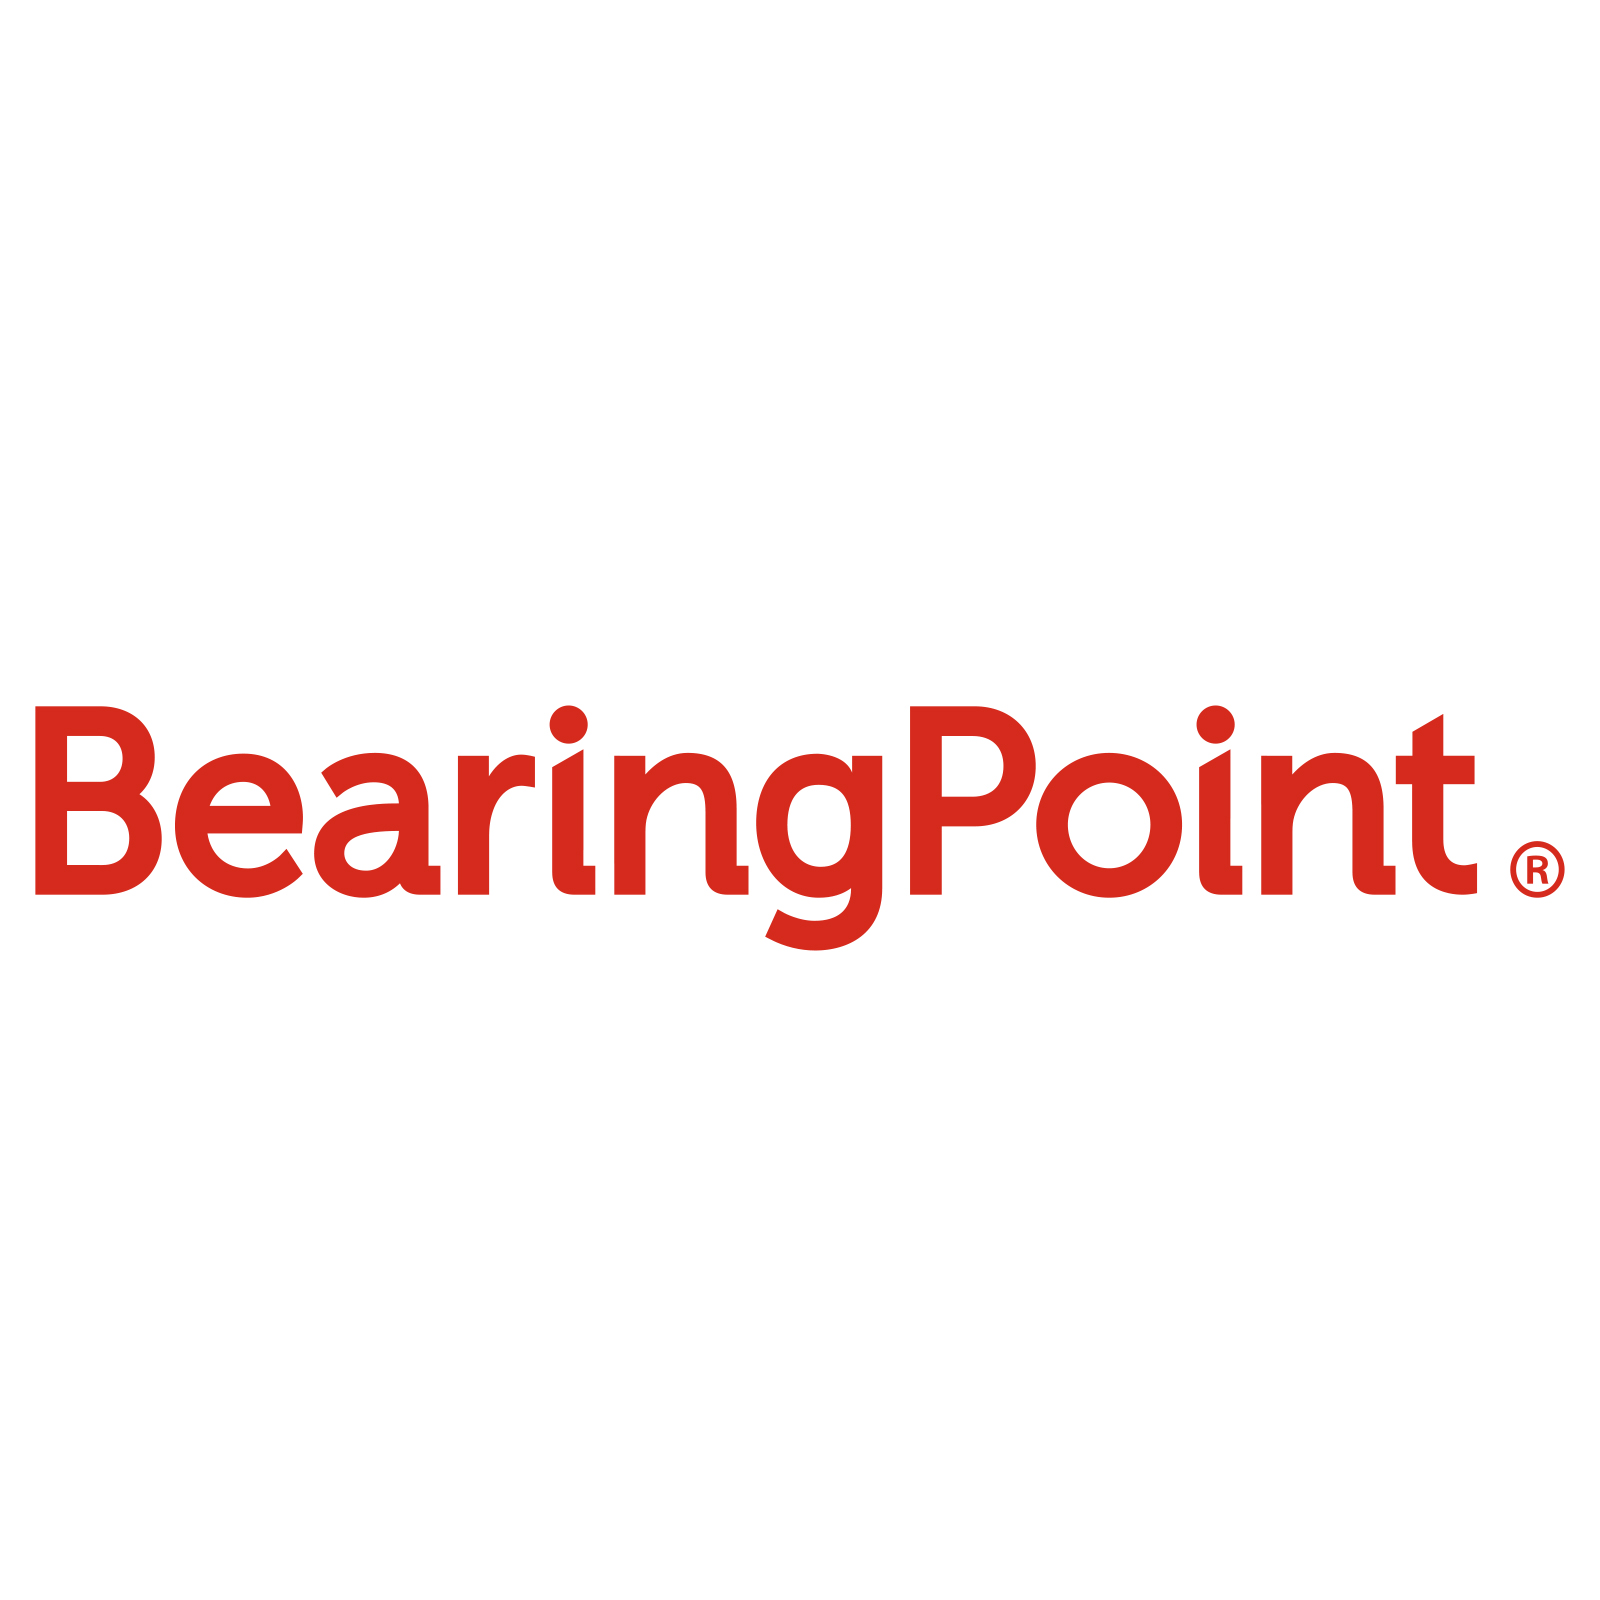 BearingPoint Talks